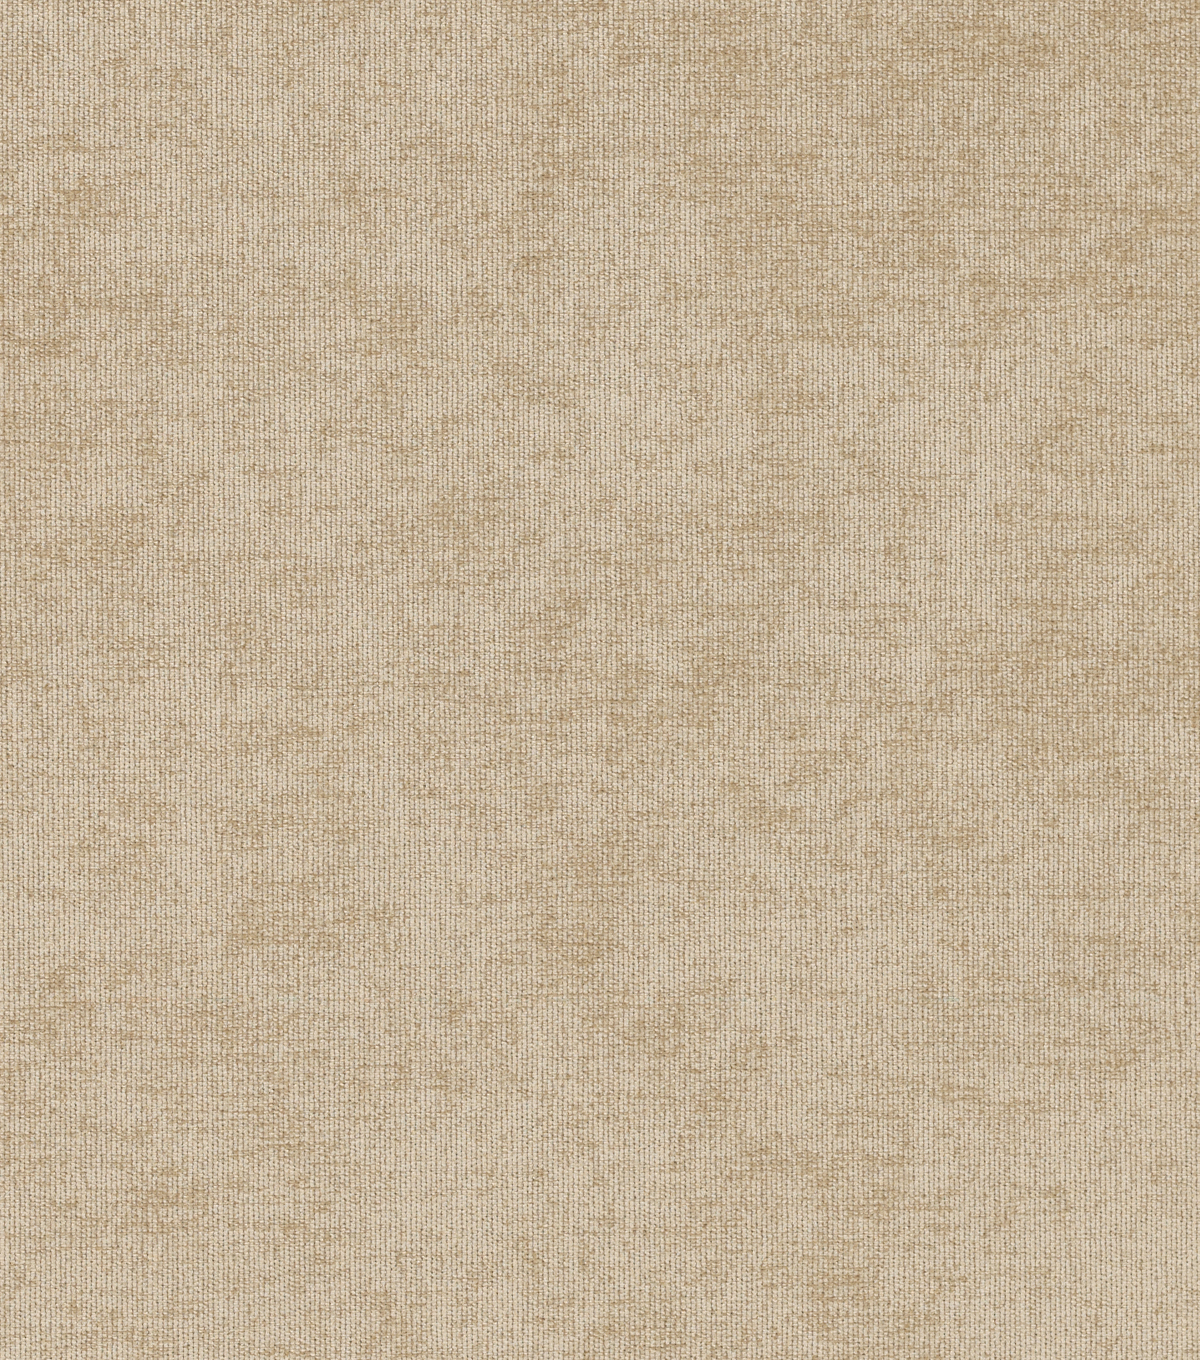 Home Decor 8\u0022x8\u0022 Fabric Swatch-Crypton Shelby Milkweed